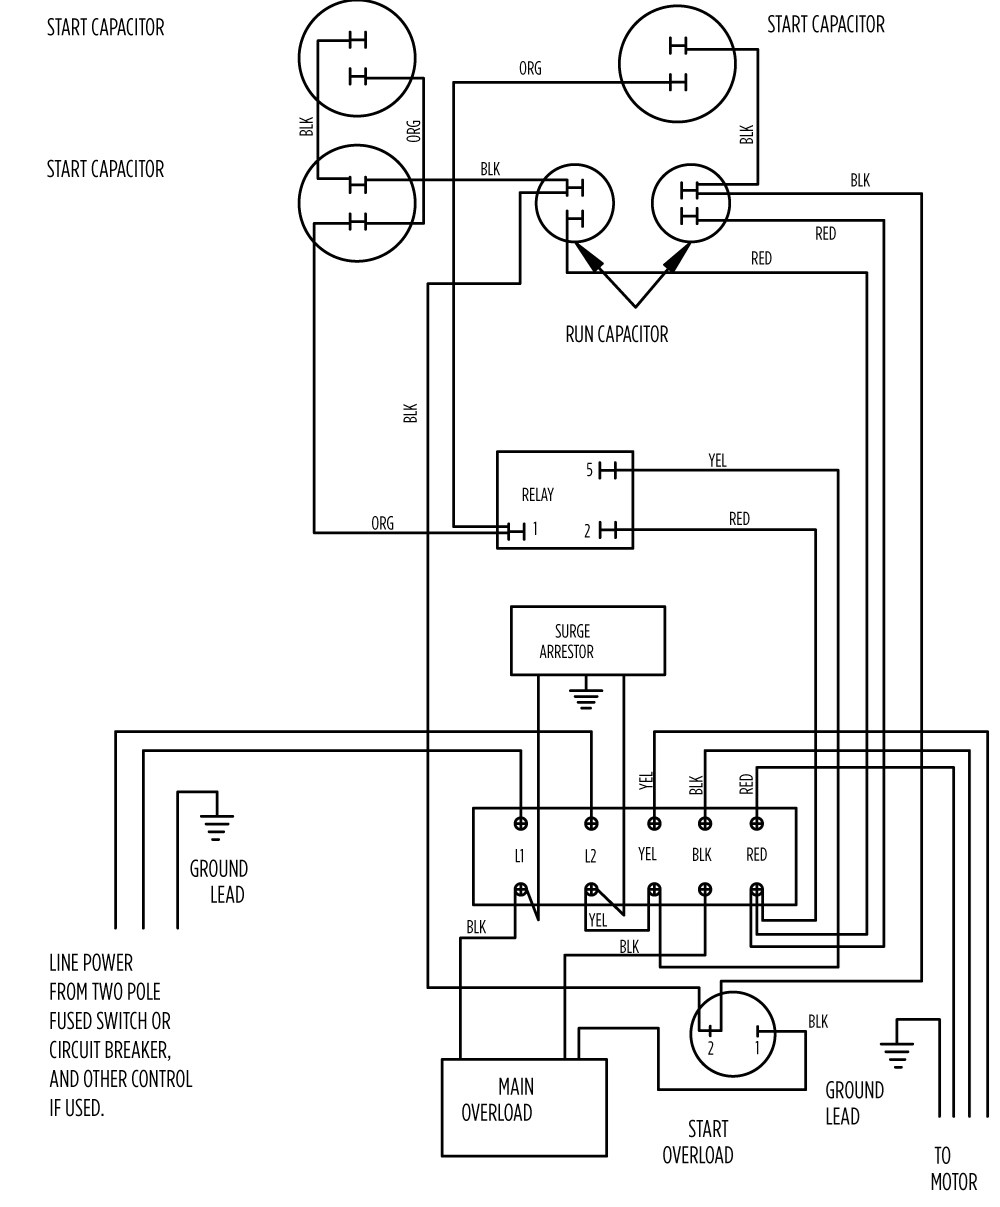 10 hp standard 282 202 9210 or 282 202 9230_aim gallery?format=jpg&quality=80 aim manual page 57 single phase motors and controls motor north american electric motor wiring diagram at mr168.co